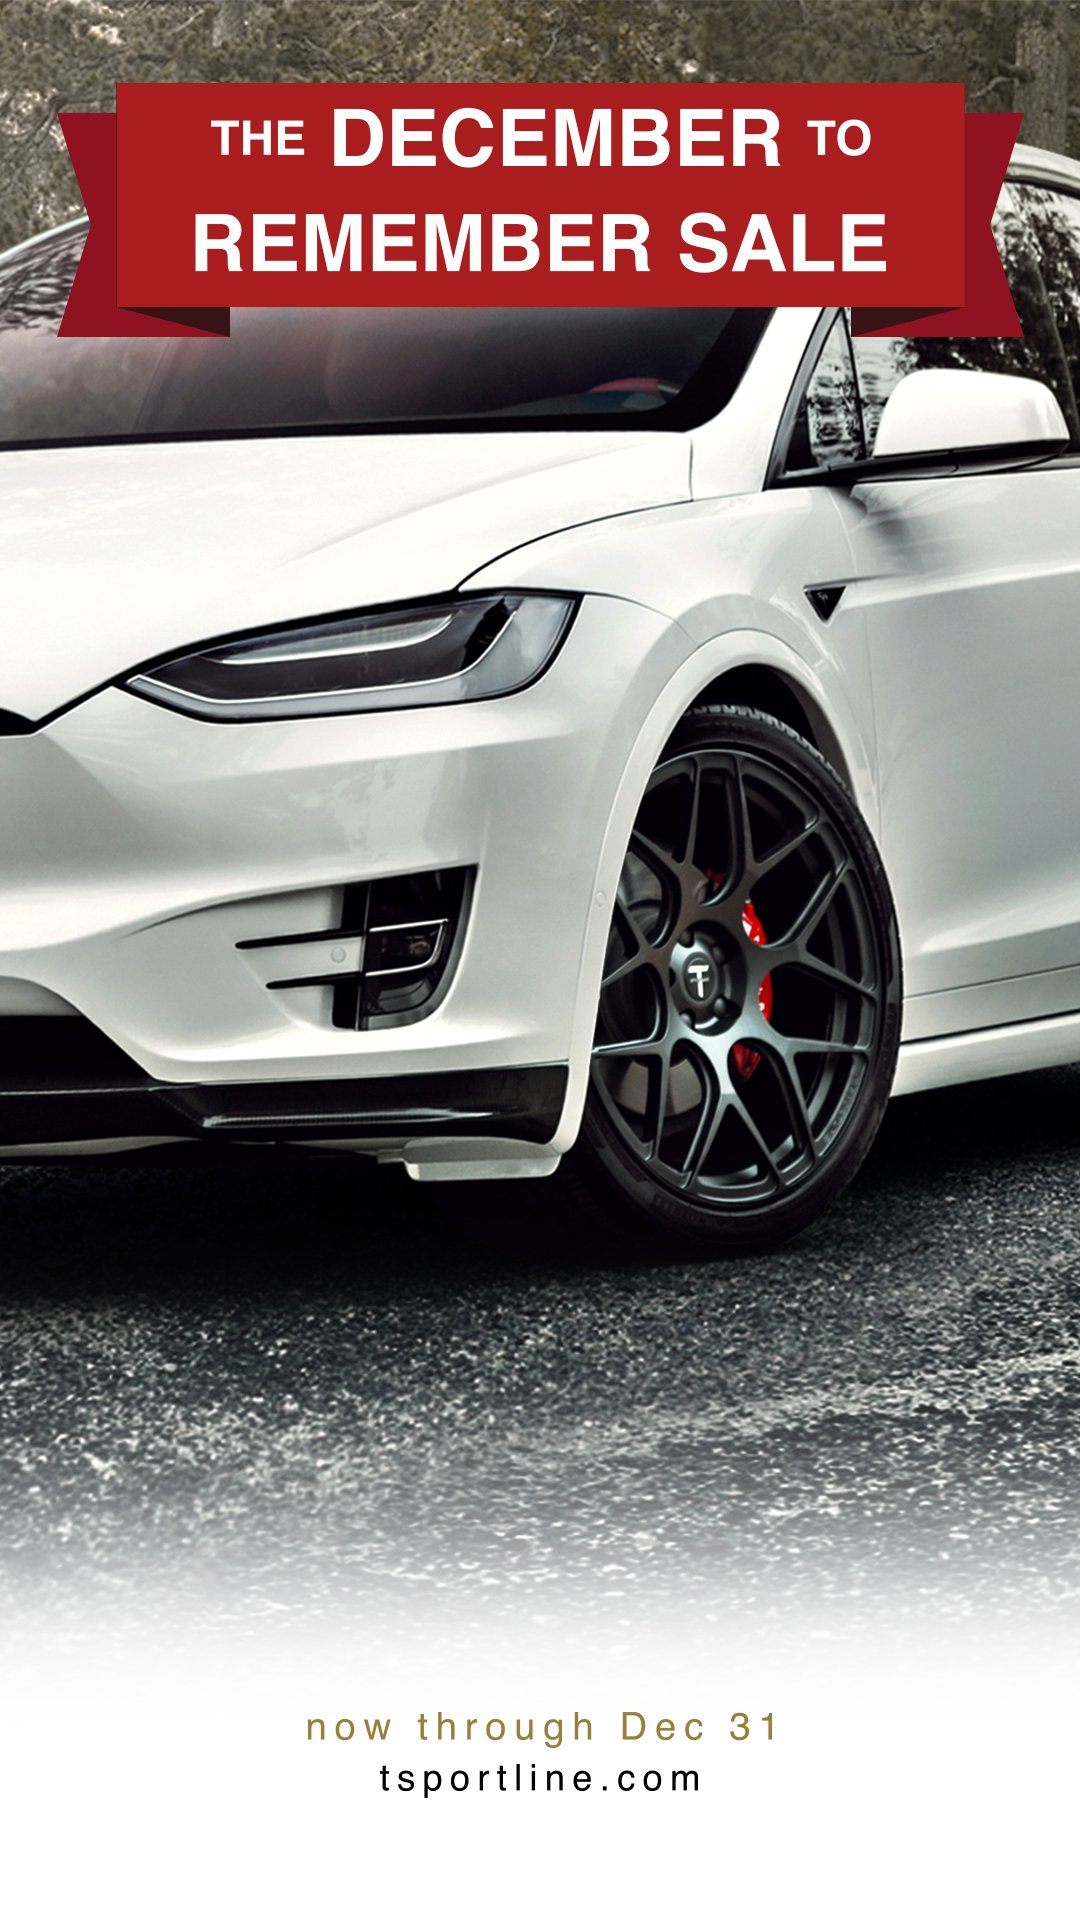 tesla-model-x-mx117-matte-gray-22-inch-forged-wheels.jpg